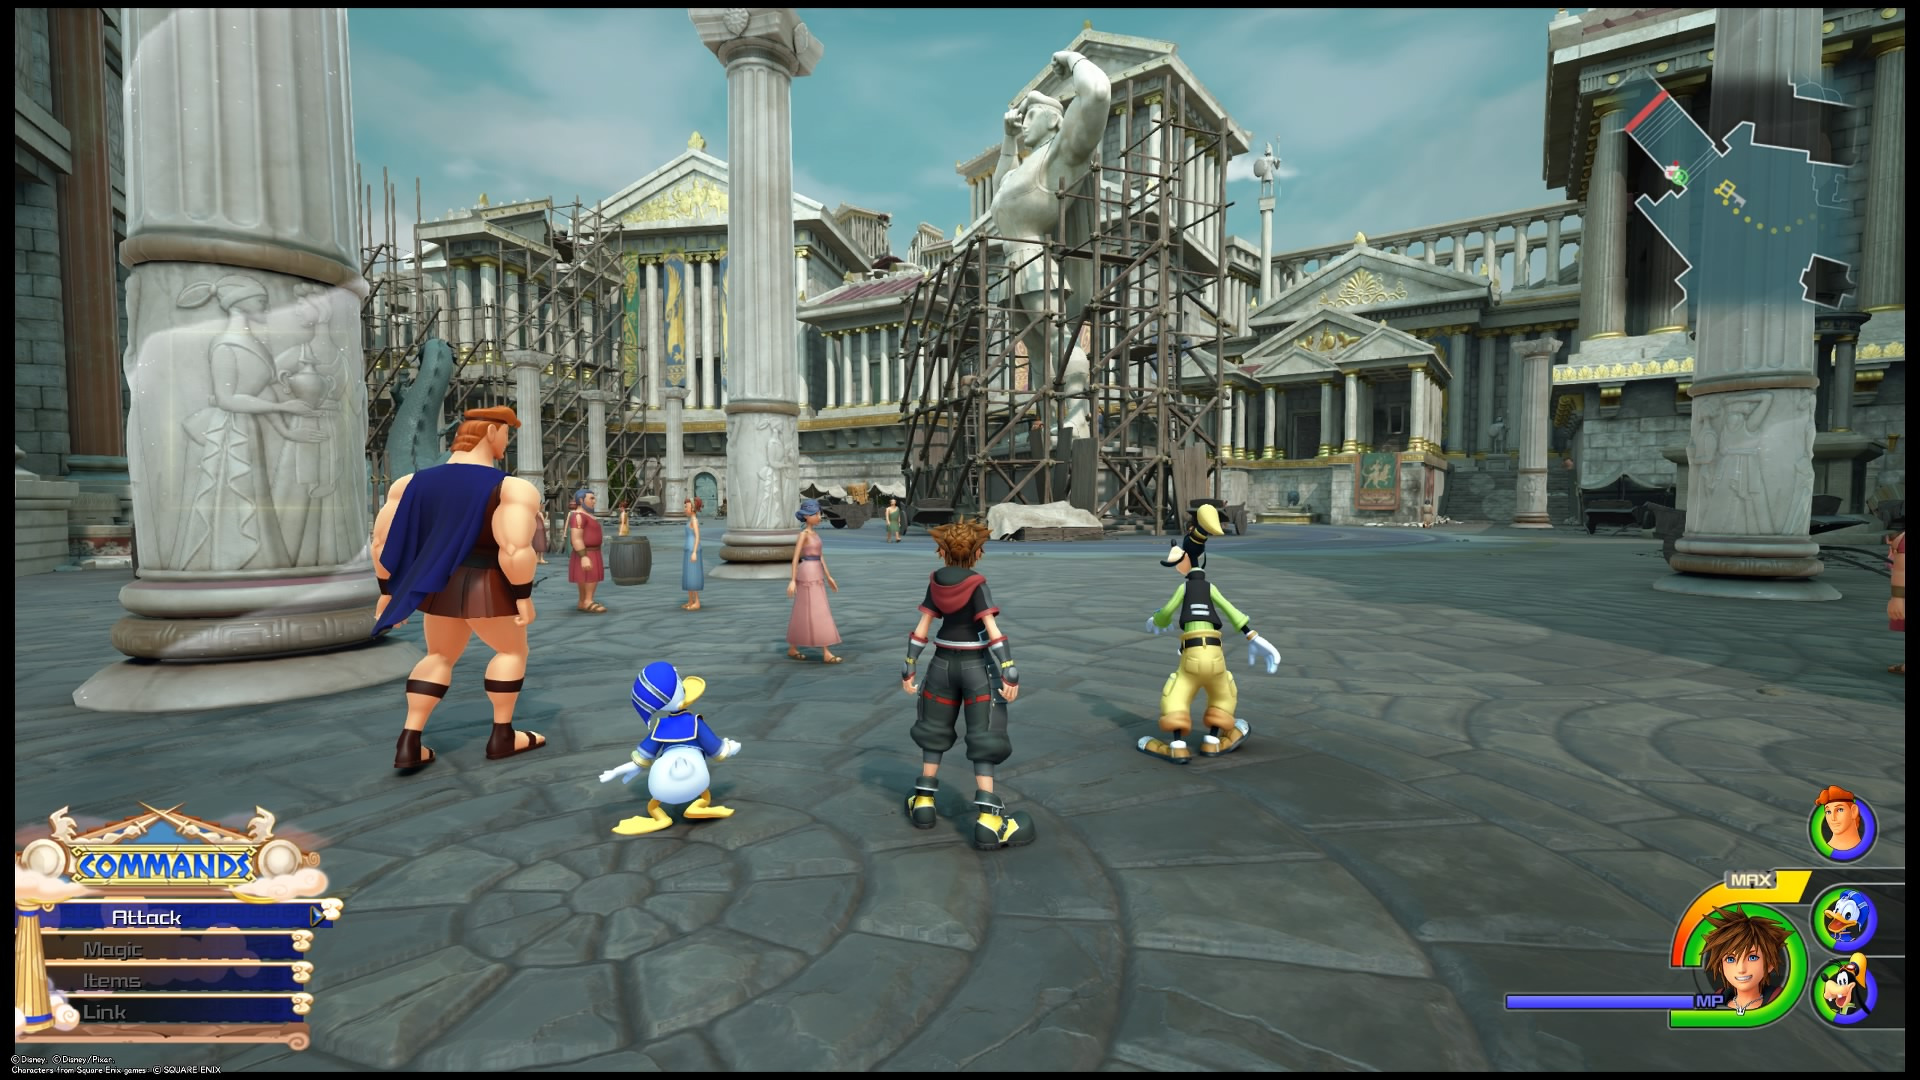 Kingdom Hearts III NPCs